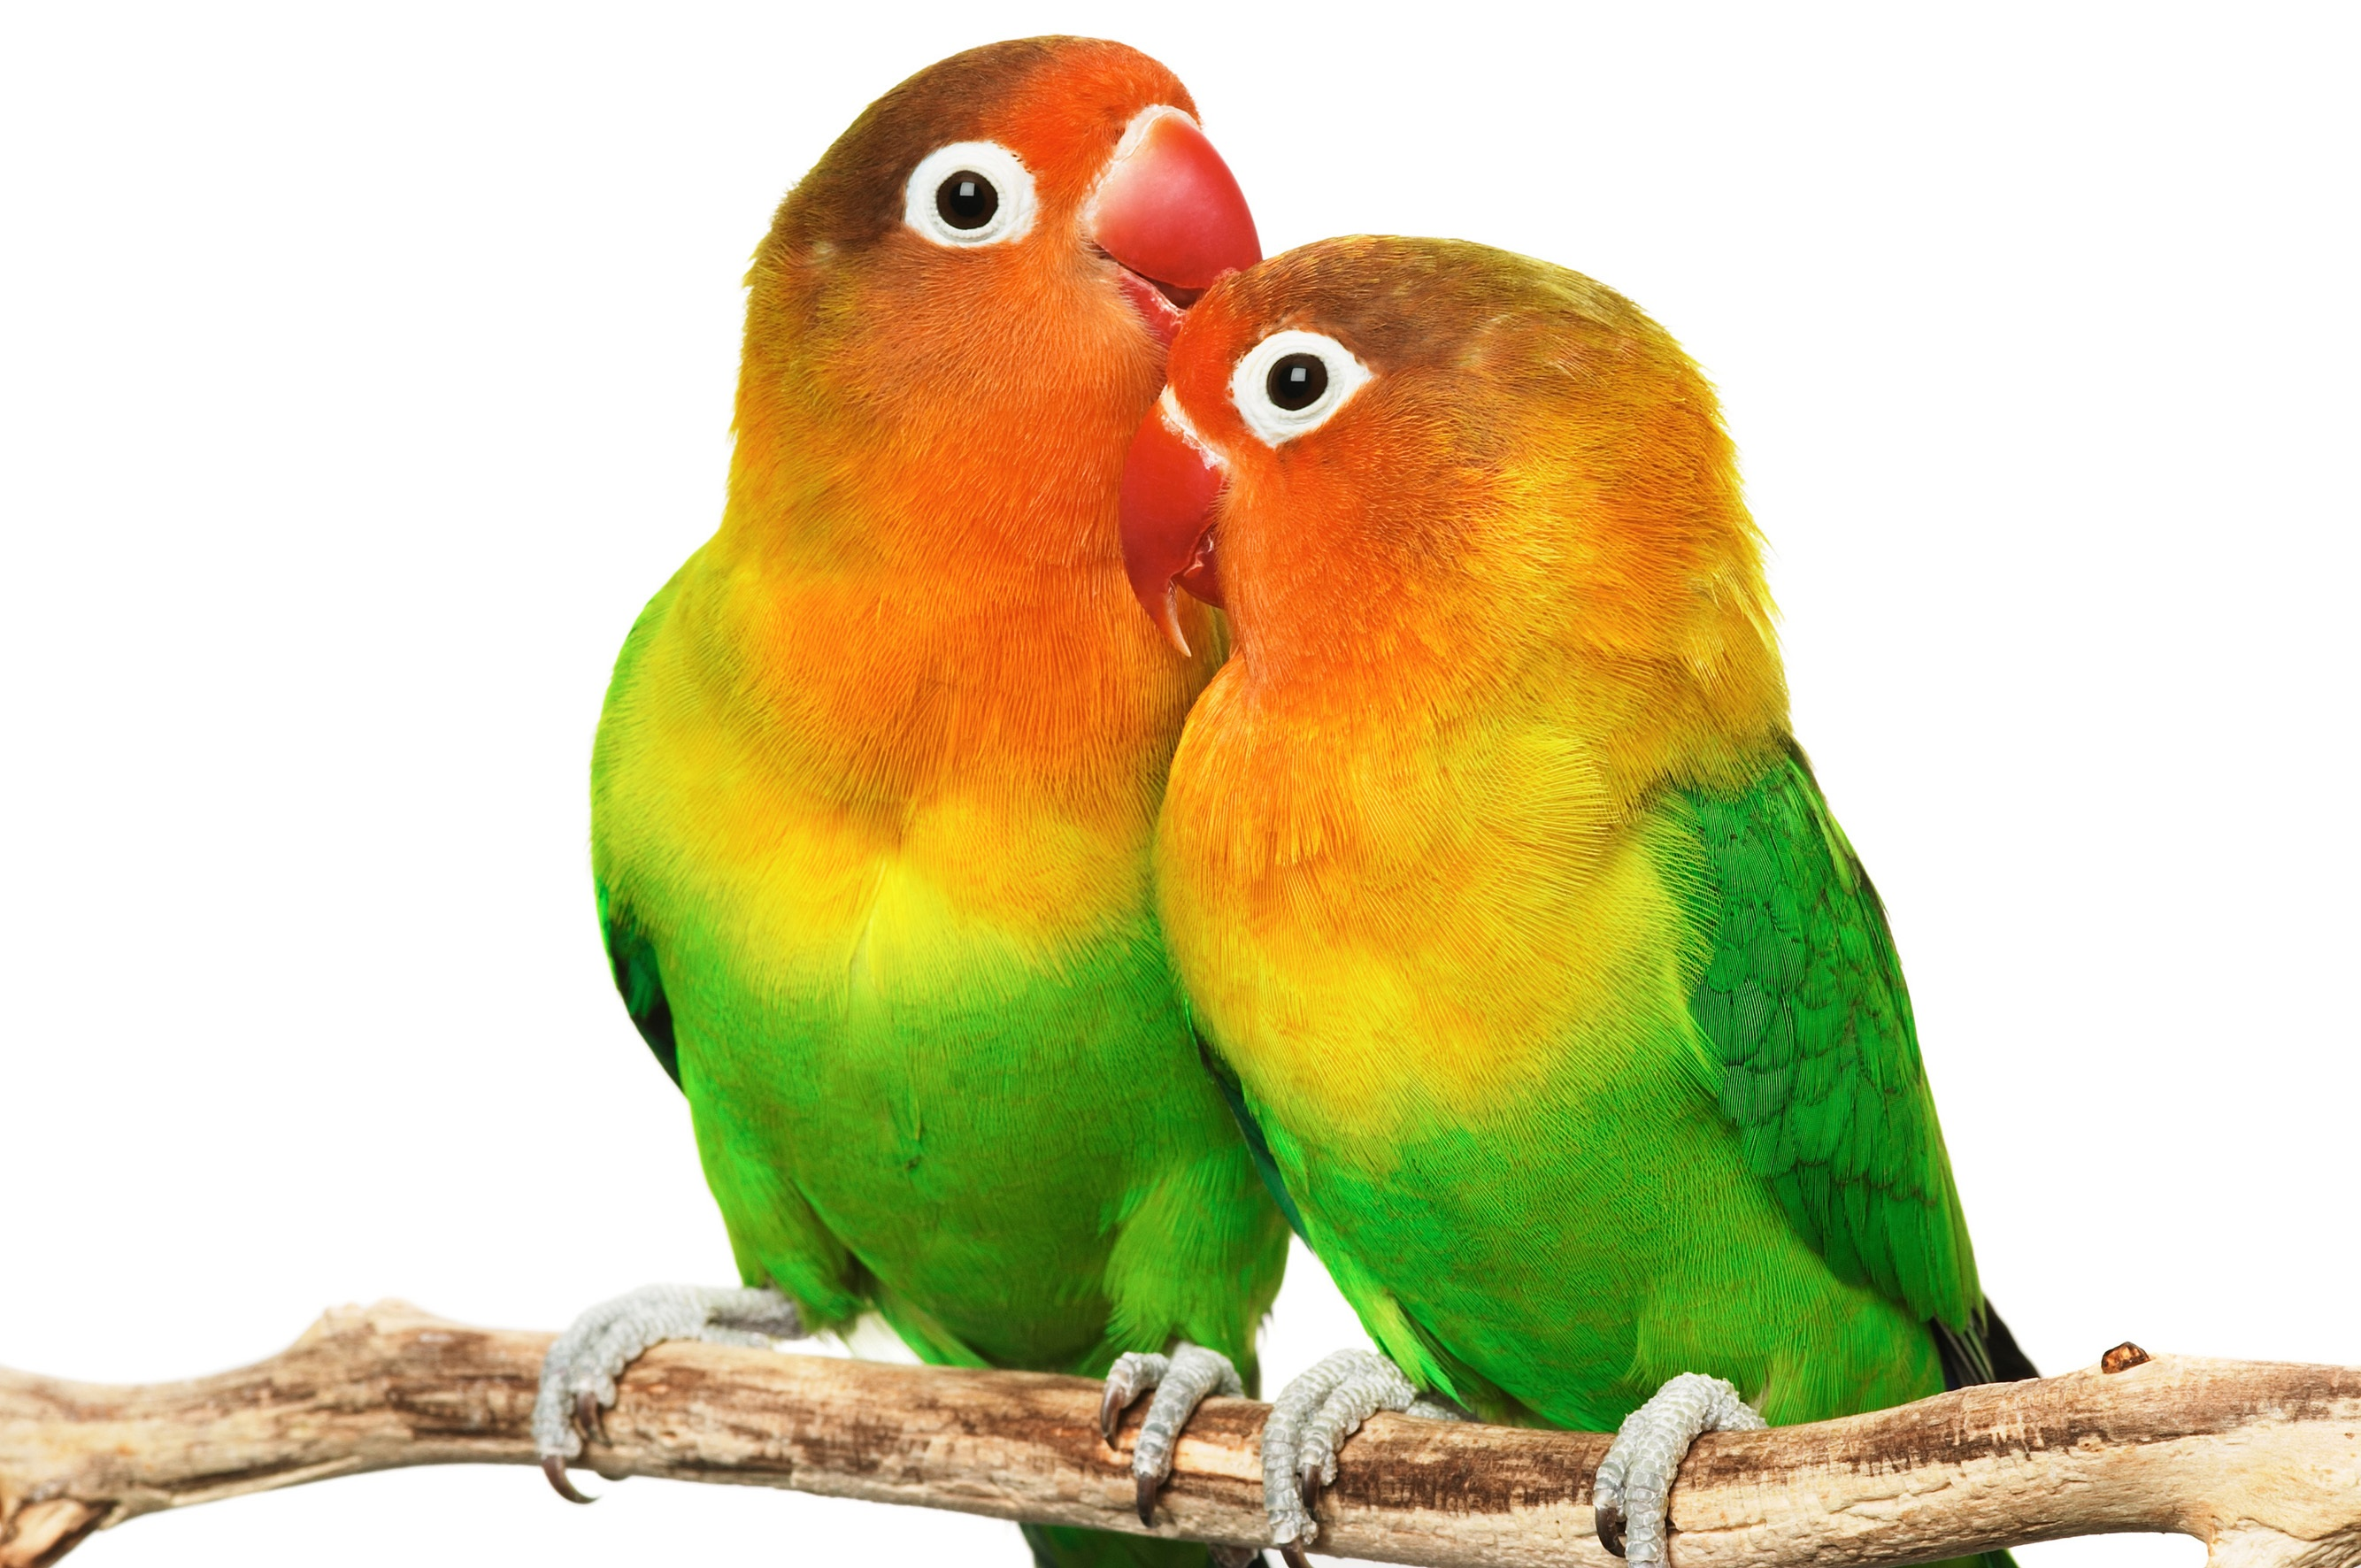 Lovely Love Birds Desktop Wallpaper Hd Pics Free Download